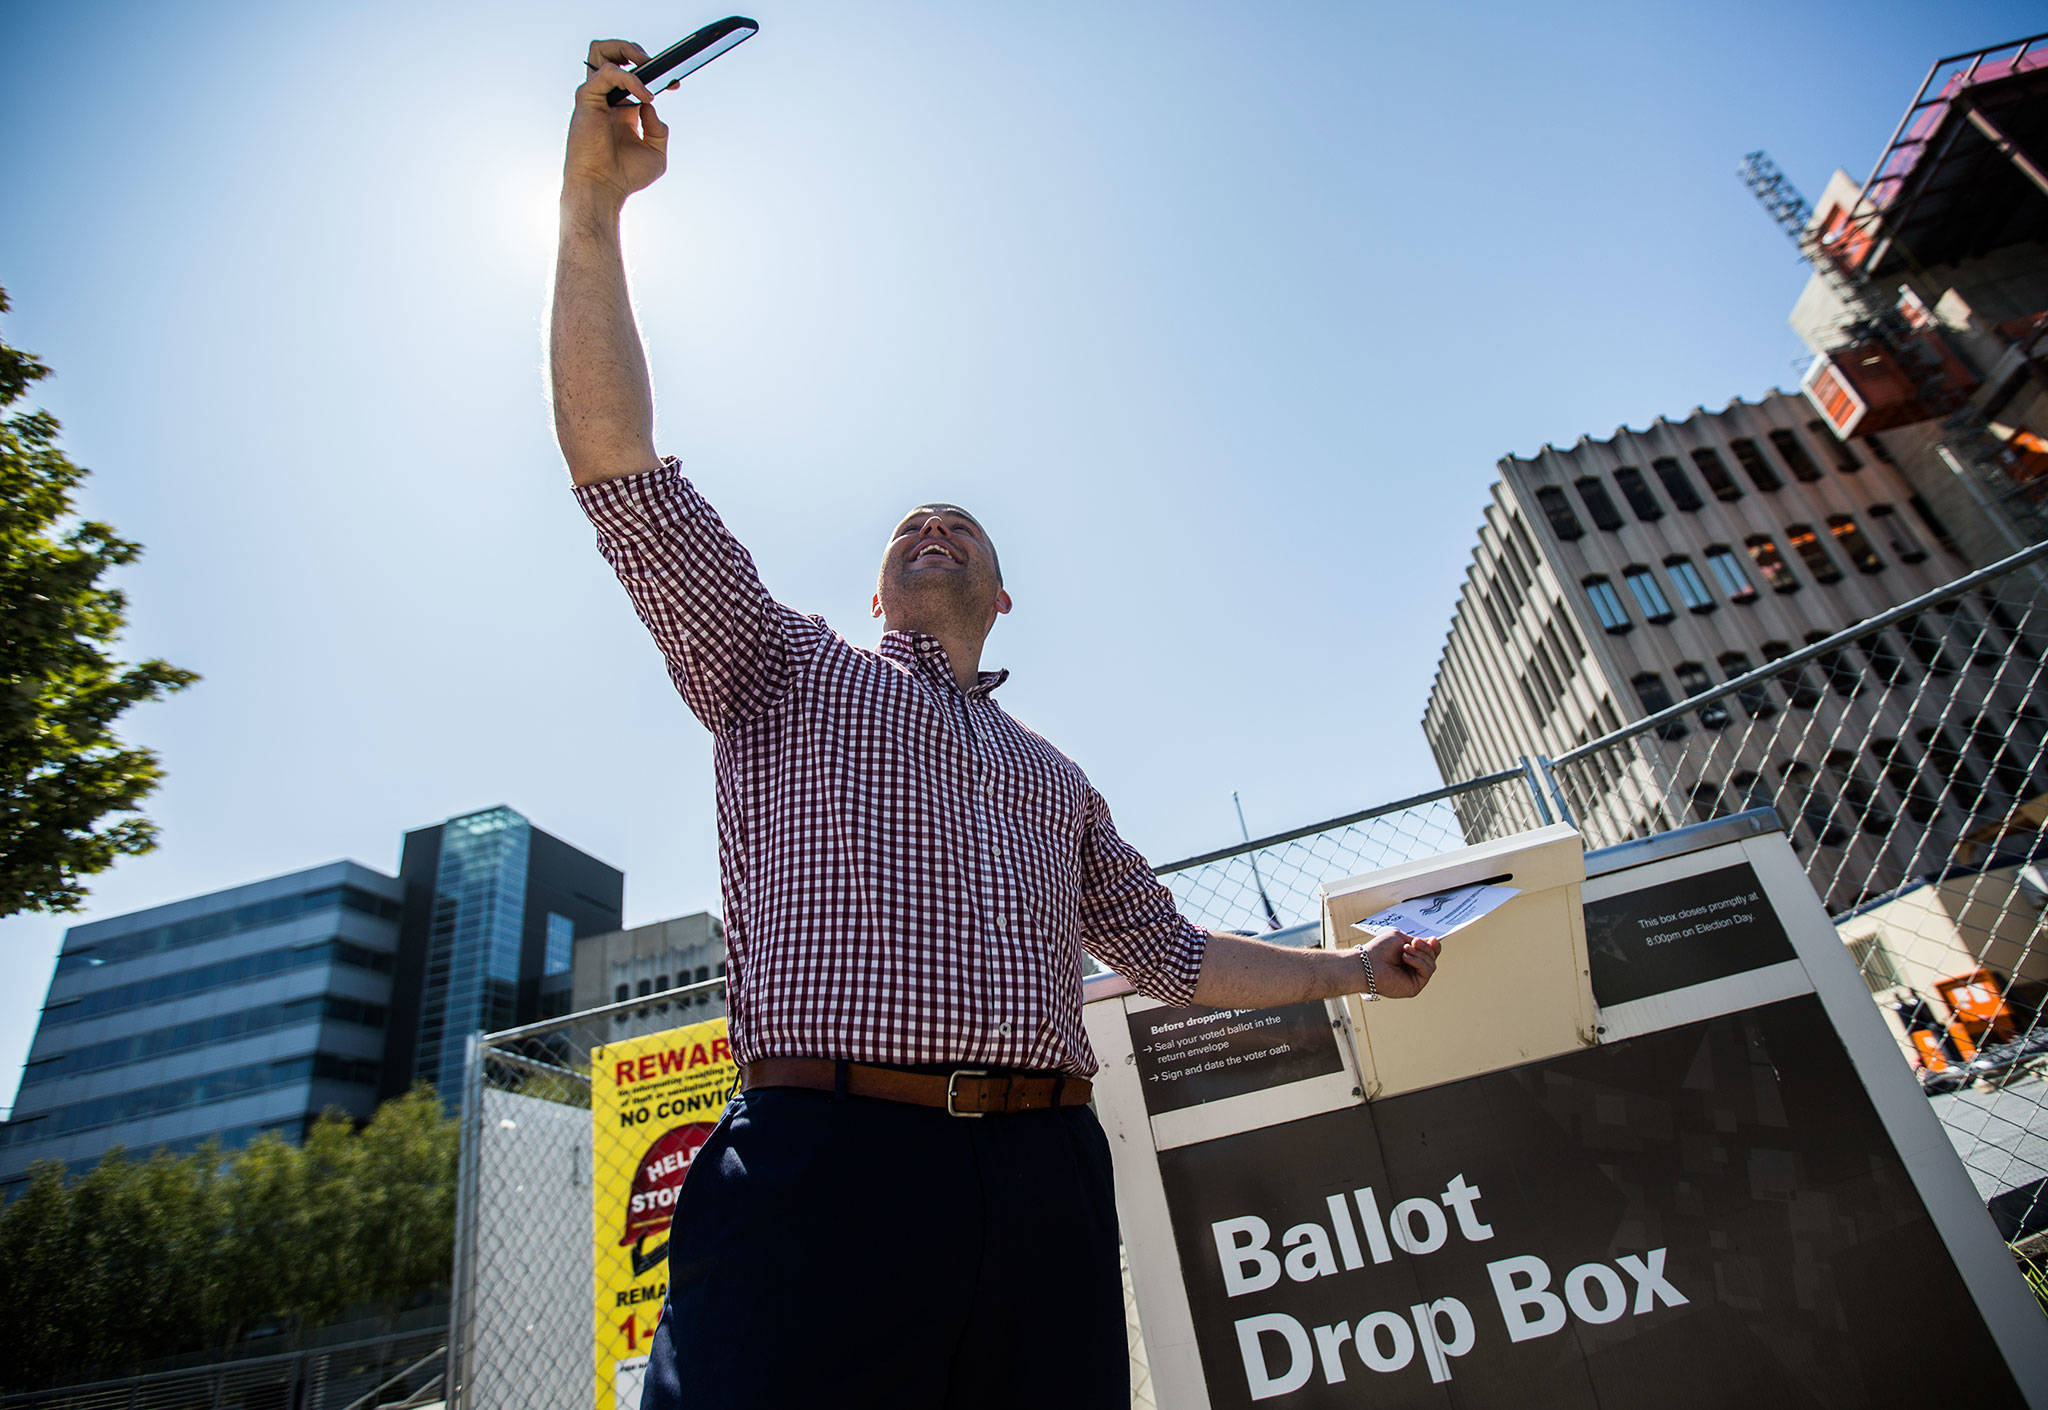 Snohomish County Council District 2 candidate Alex Lark stops to take a photo before dropping his ballot in the box on the Snohomish County Campus Plaza on Aug. 6 in Everett. (Olivia Vanni / The Herald)